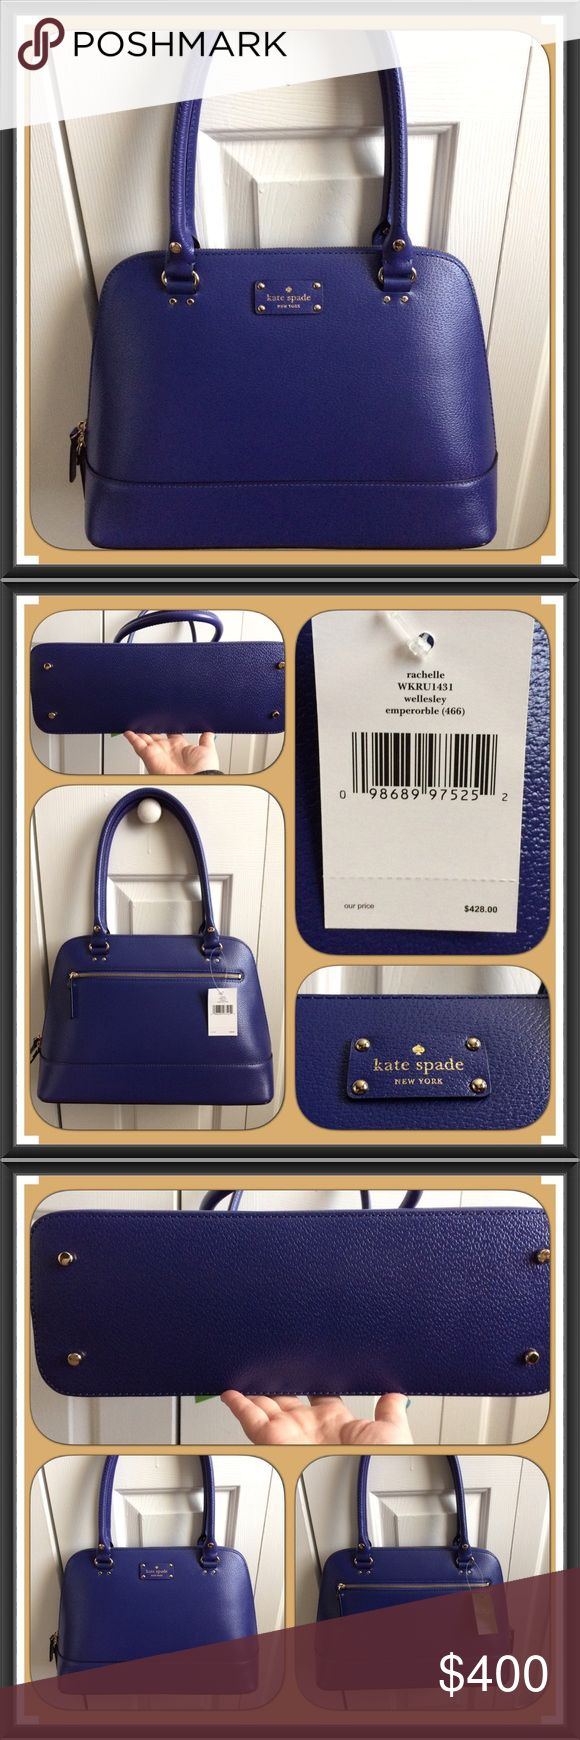 """NWT Kate Spade Wellesley Rachelle in Emperor Blue Brand NWT beautiful Emperor Blue Kate Spade large Wellesley Rachelle Satchel. No larger available through Kate Spade.  The color is absolutely gorgeous!!  You can take it anywhere and everywhere - day to night!!! No trades! Details: • Leather  • Gold Tone Hardware  • Feet on bottom of bag • One exterior zip pocket  • Double Zipper Closure • Two interior slip pockets • One interior zip pocket • Blue Kate Spade Signature lining • 8"""" Handle Drop…"""